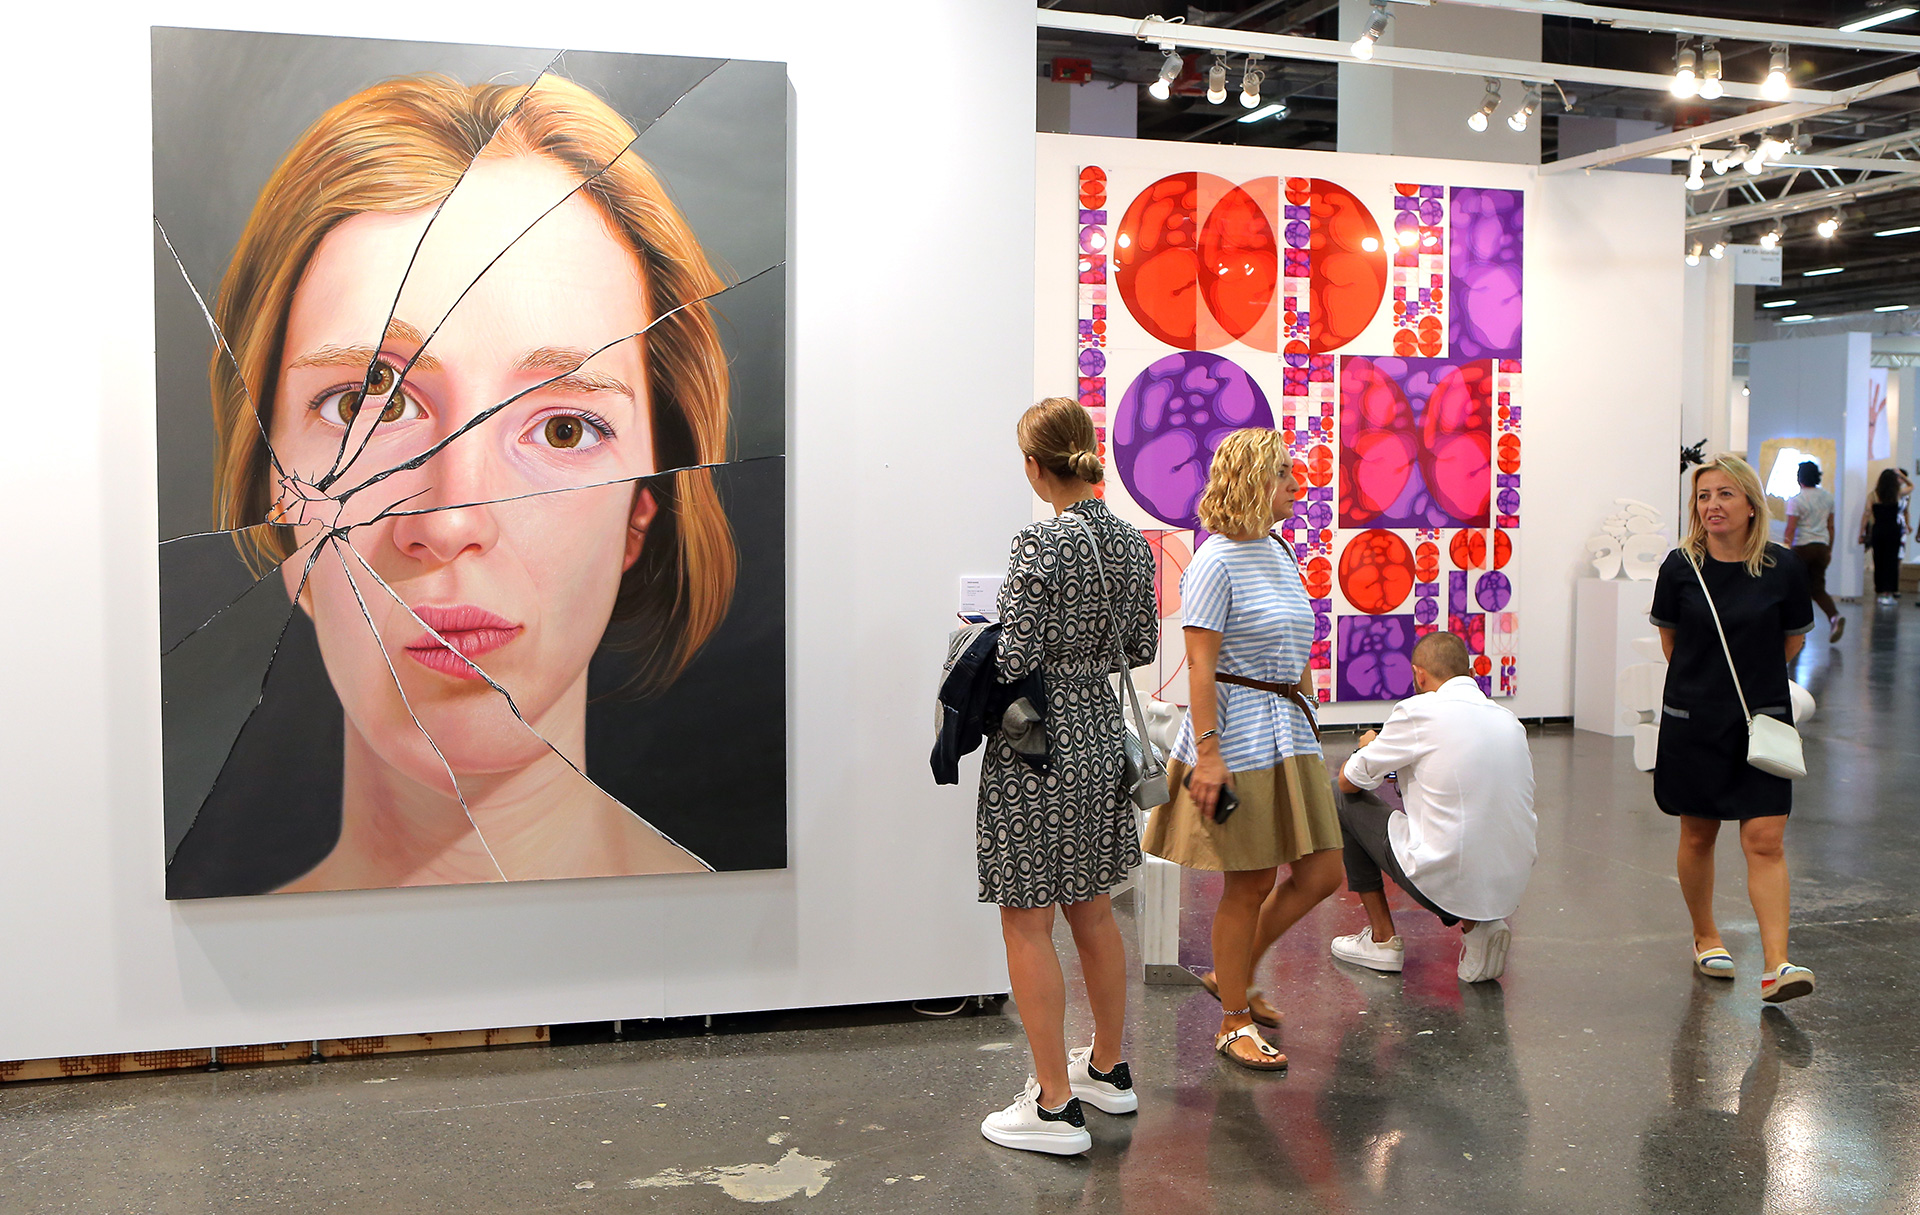 A painting reinvented at the Contemporary Istanbul art fair | Contemporary Istanbul | STIR